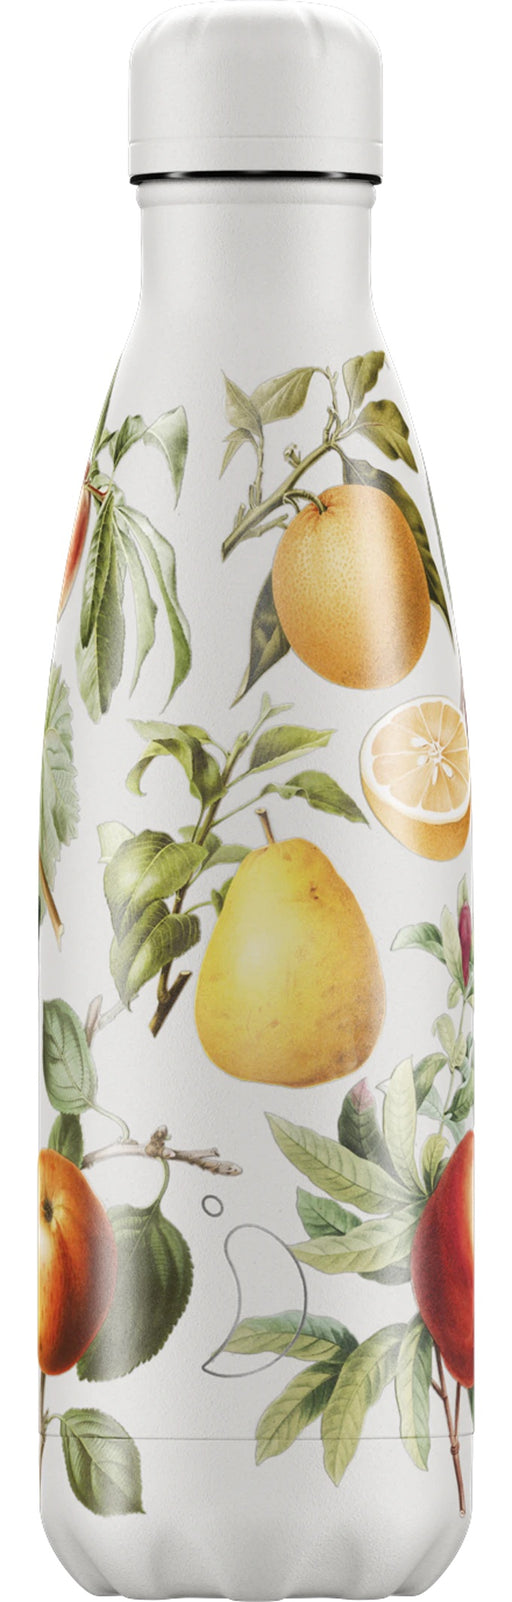 Chilly's Bottle 500ml Botanical Fruit